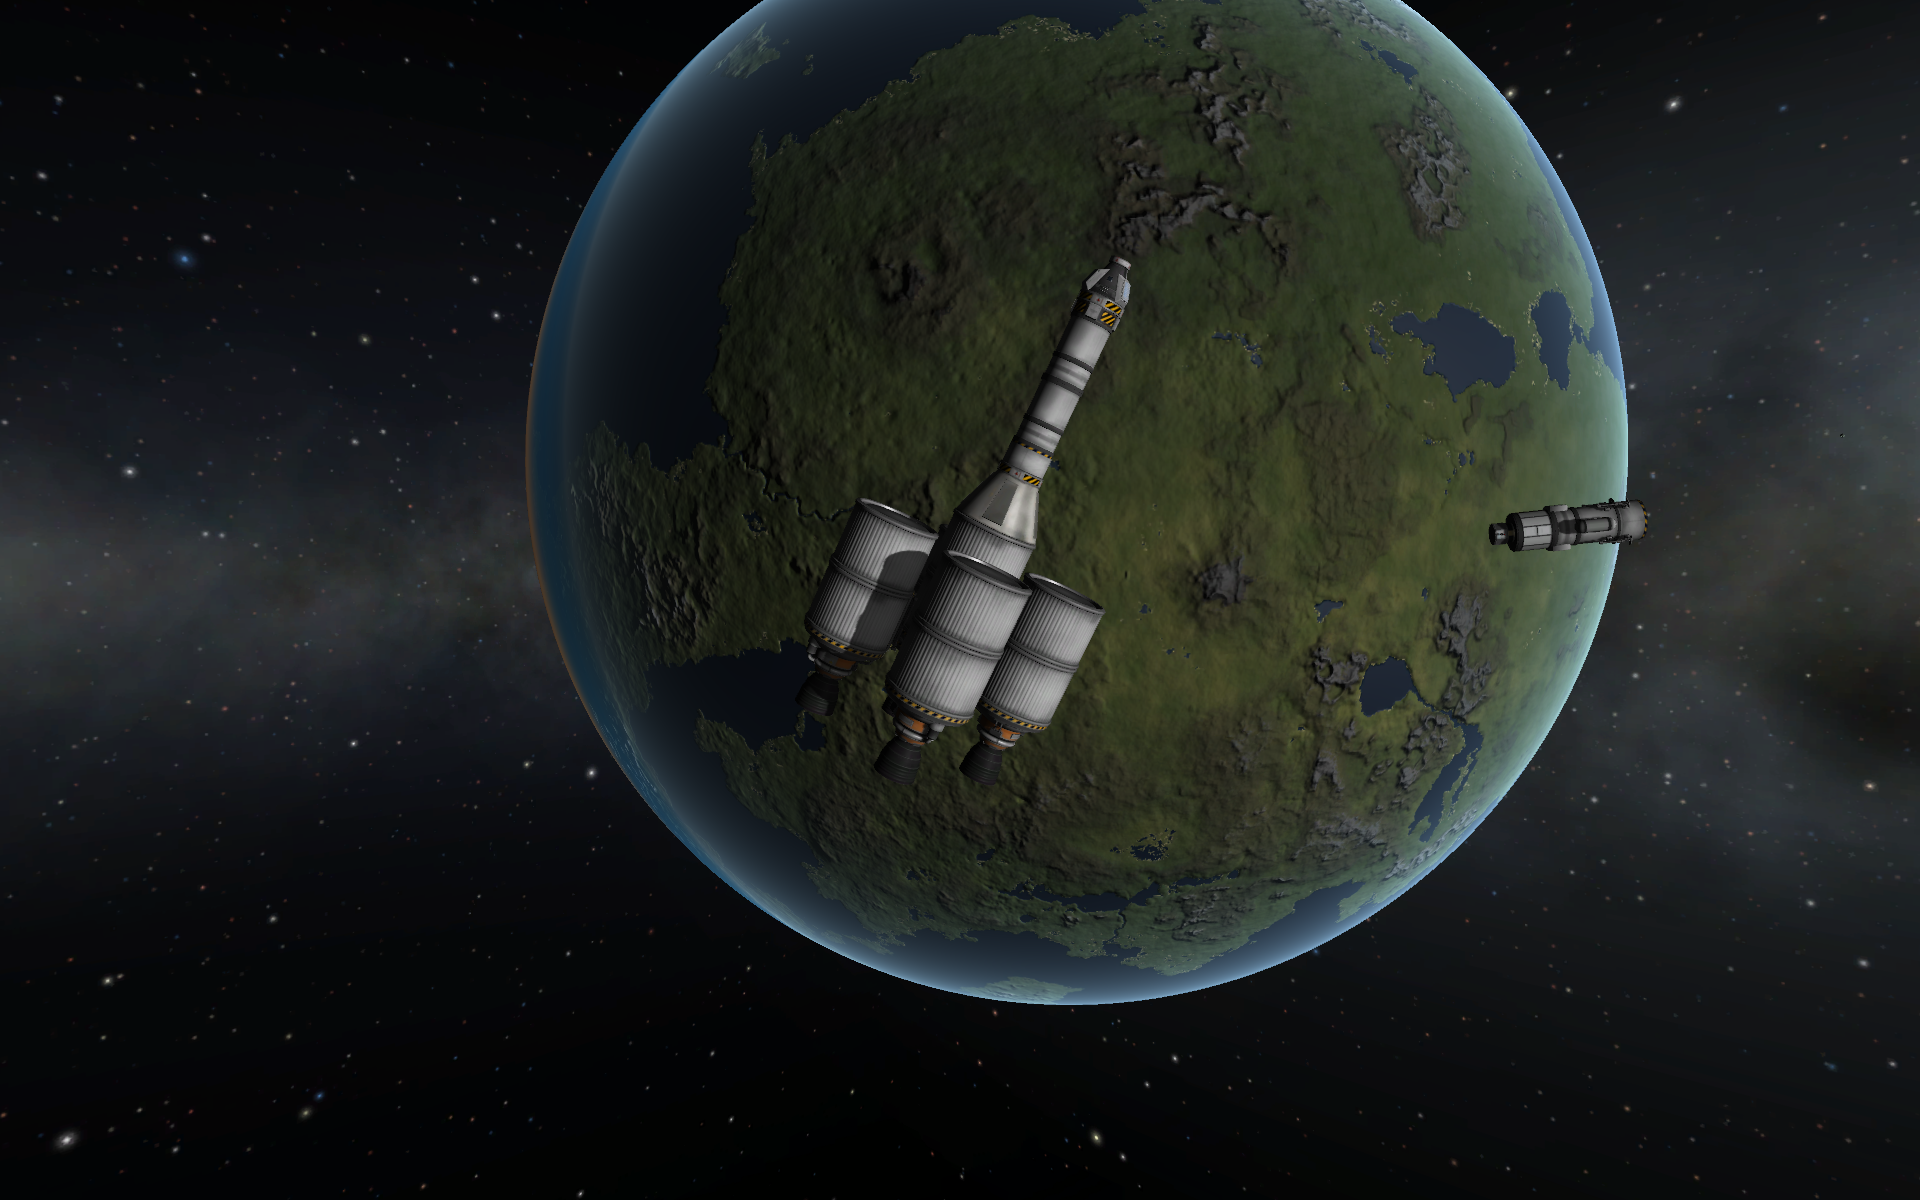 Kerbal Space Program is for amazing screen shots ...